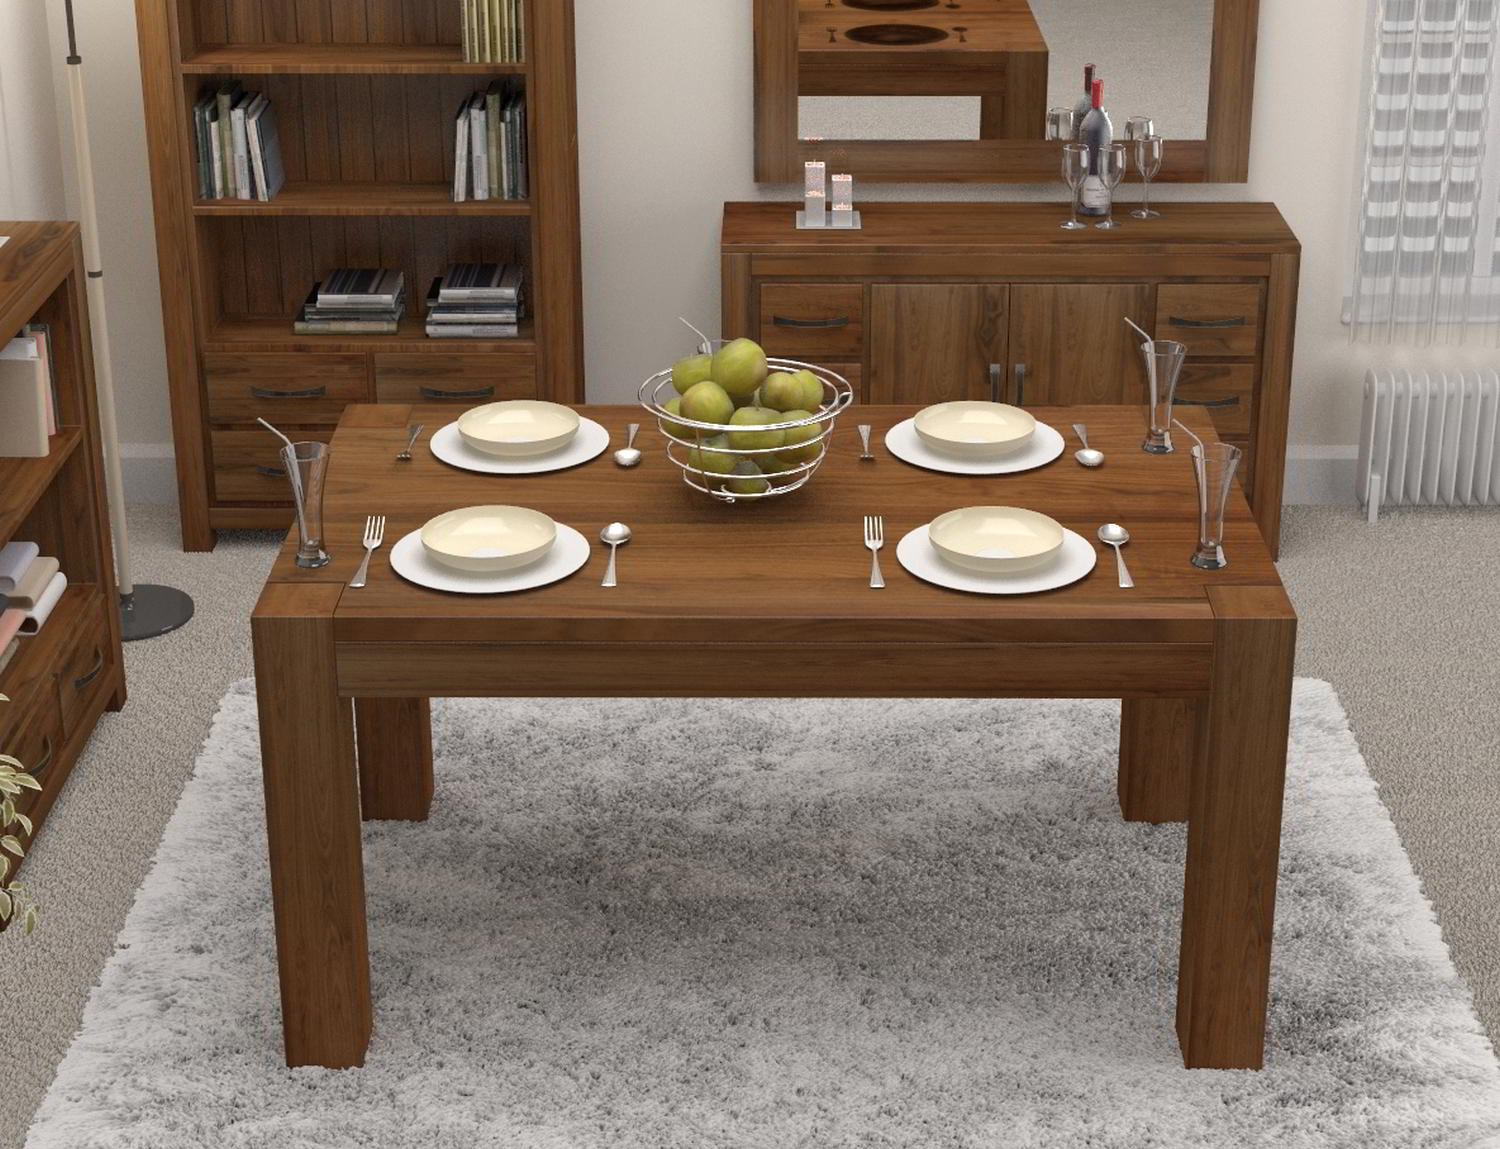 linea solid walnut home dining room furniture four seater dining linea solid walnut home dining room furniture four seater dining table